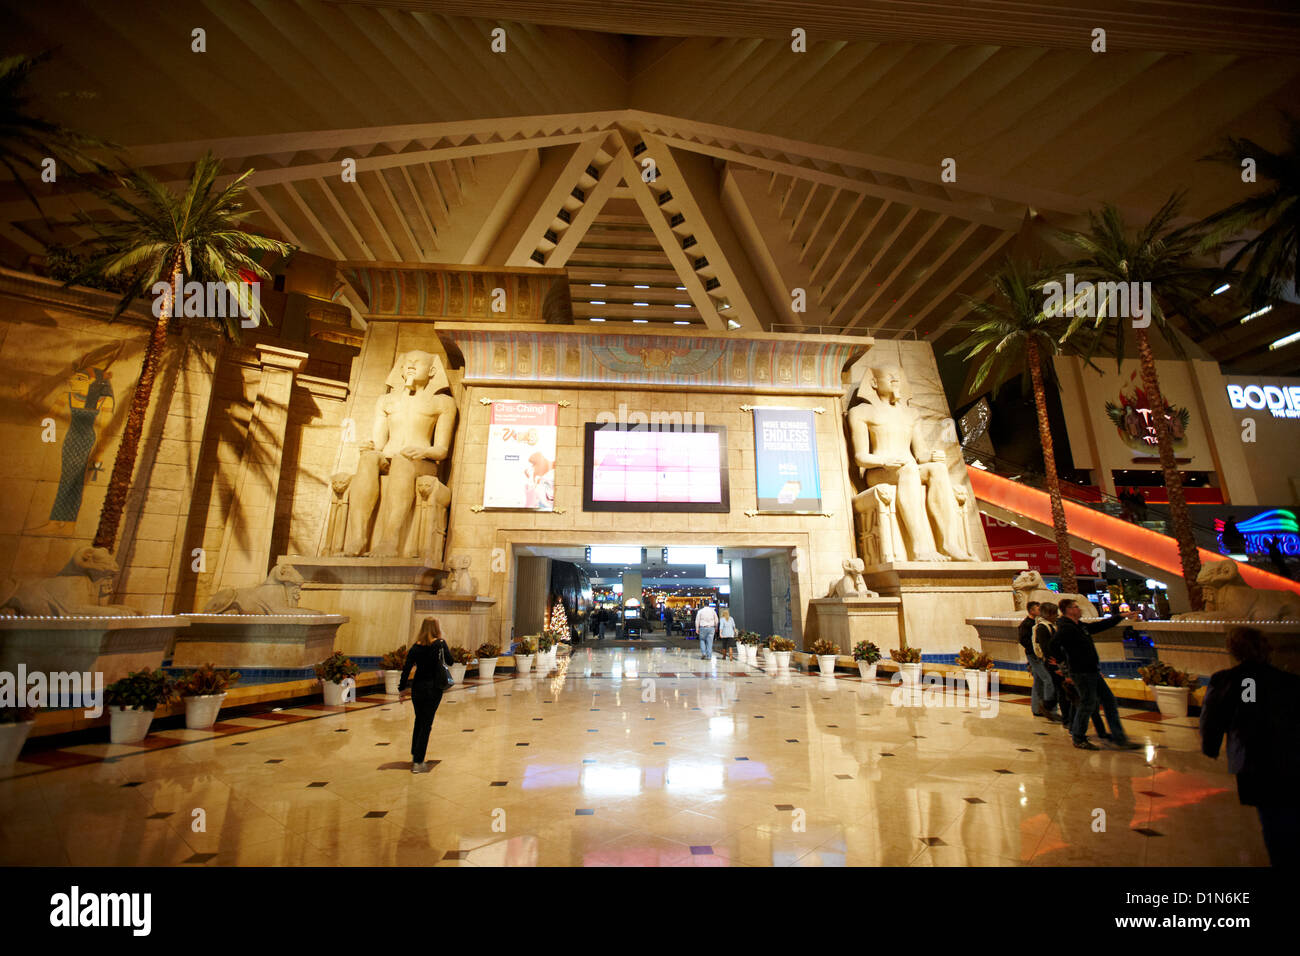 interior of the pyramid at the luxor resort hotel and